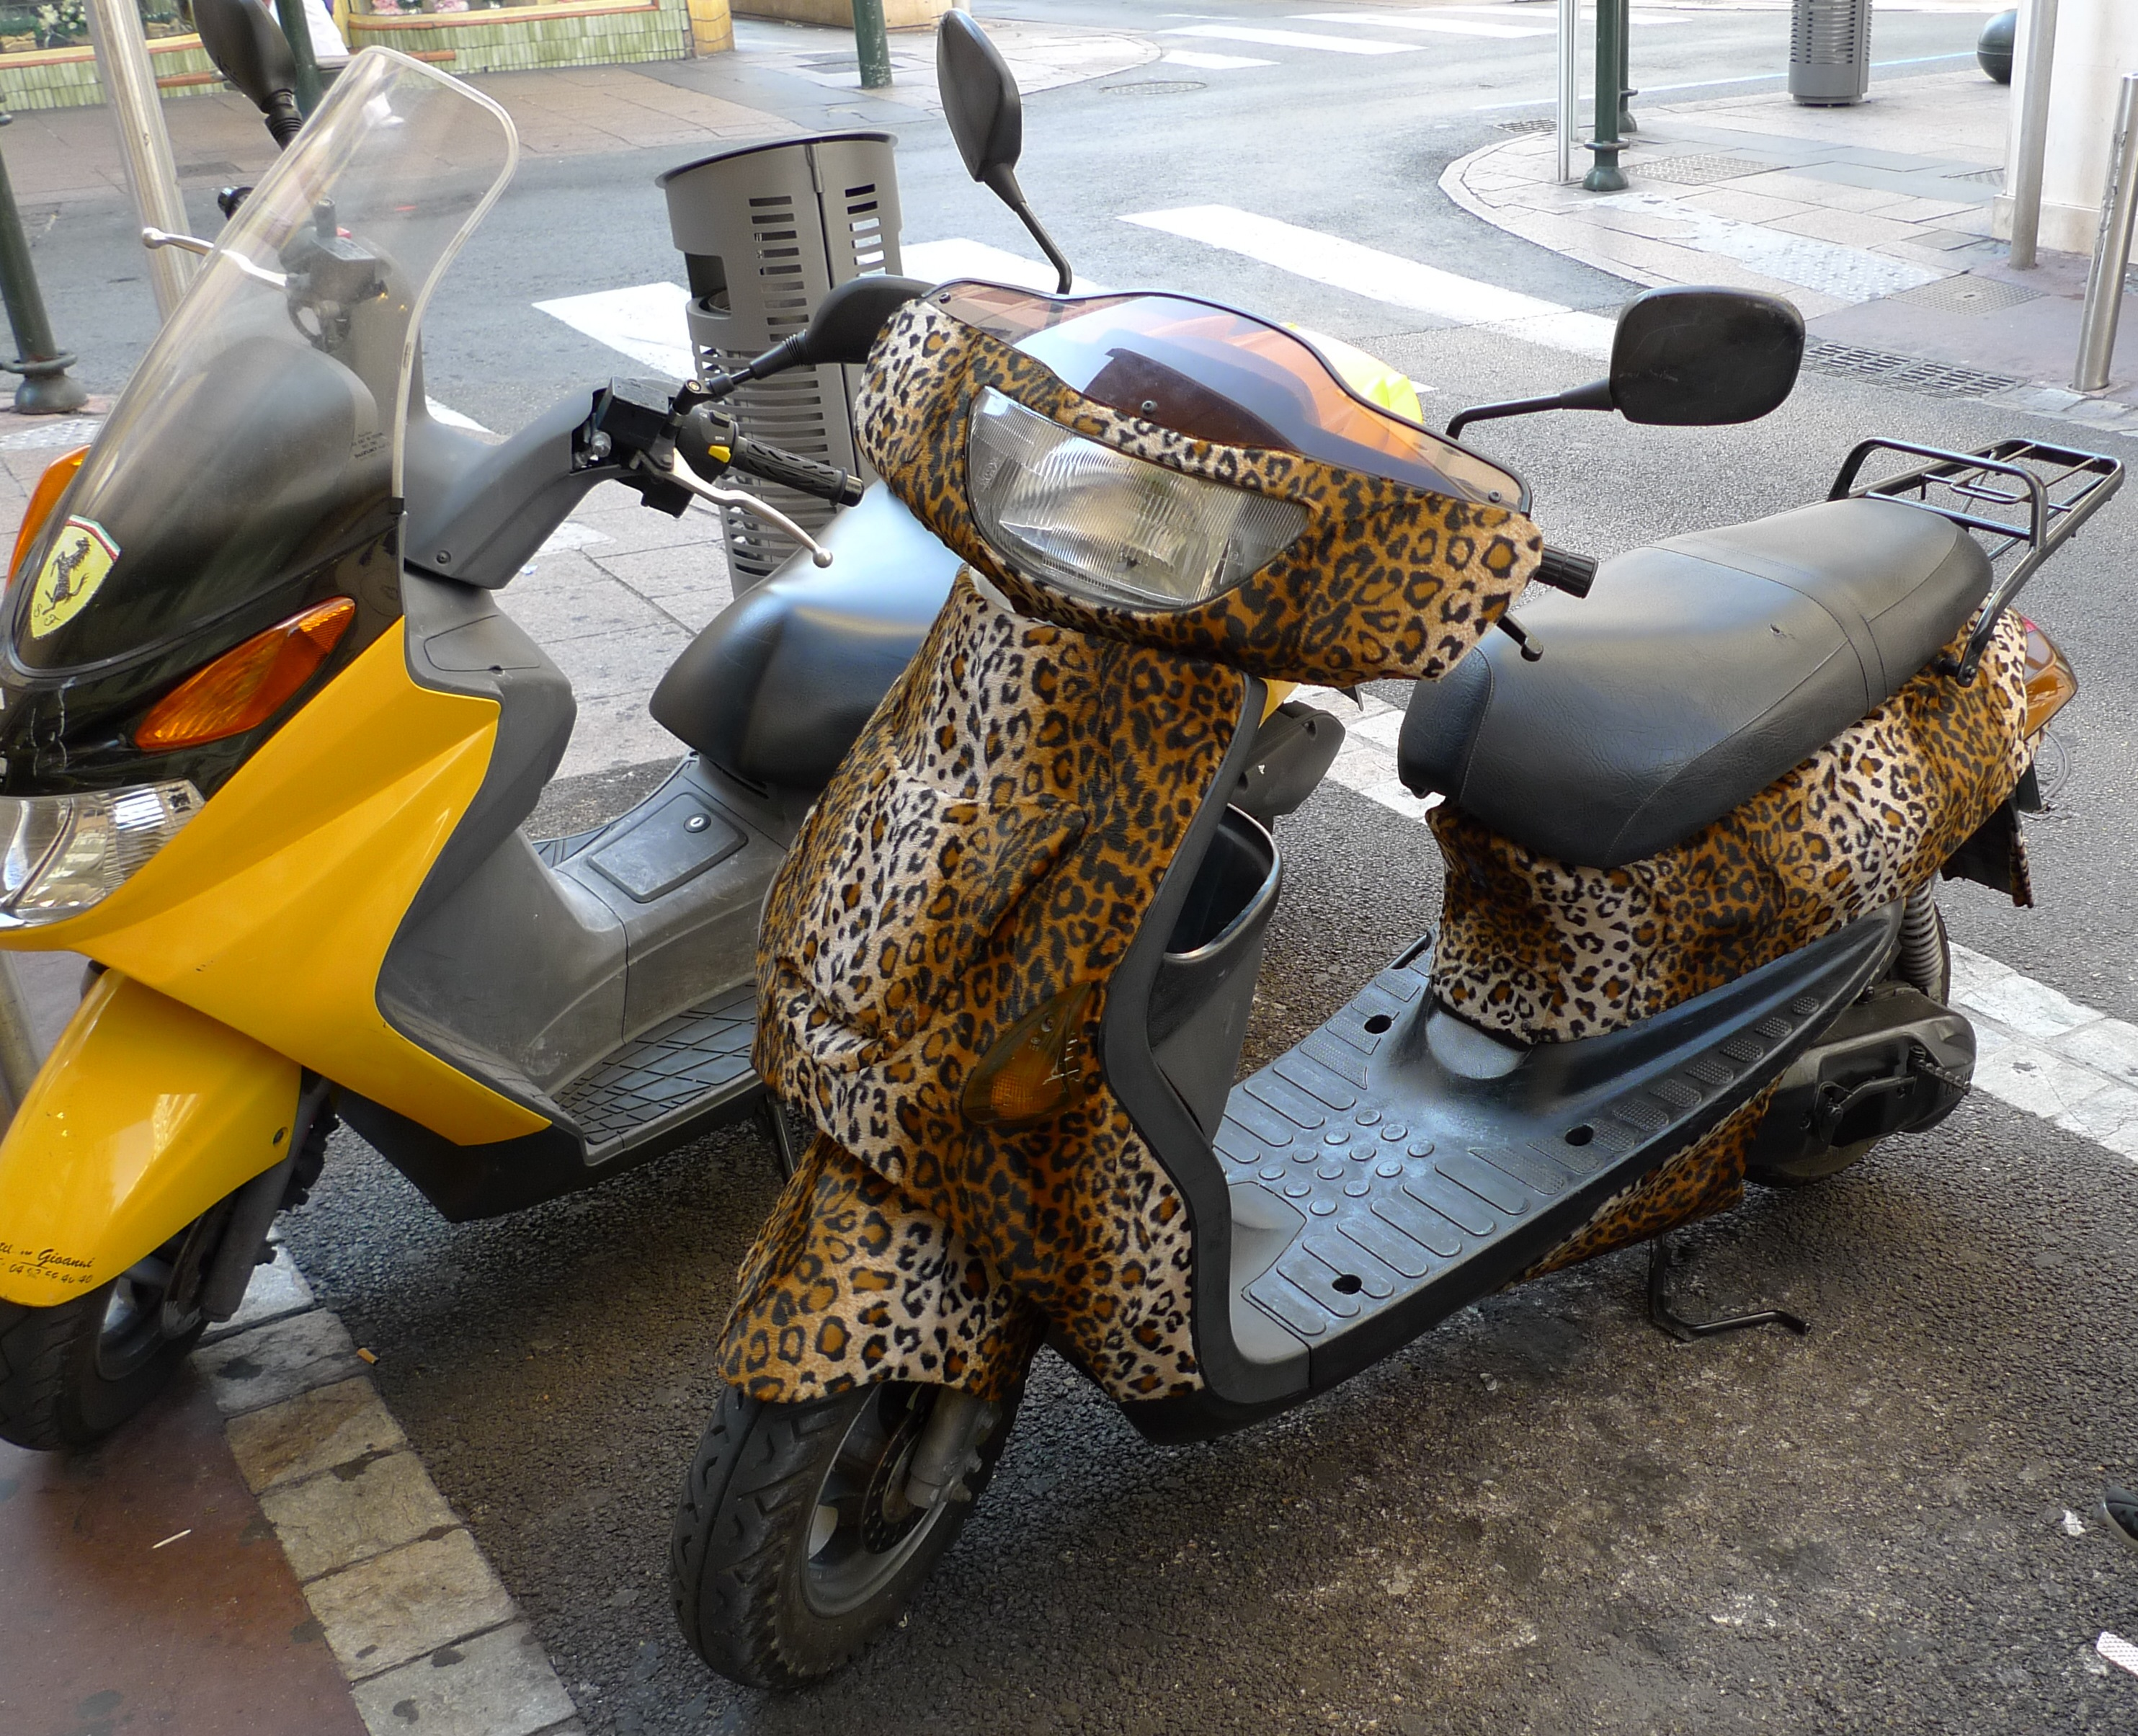 This scooter was in Cannes - The Leopard Skin is actually flock not paint